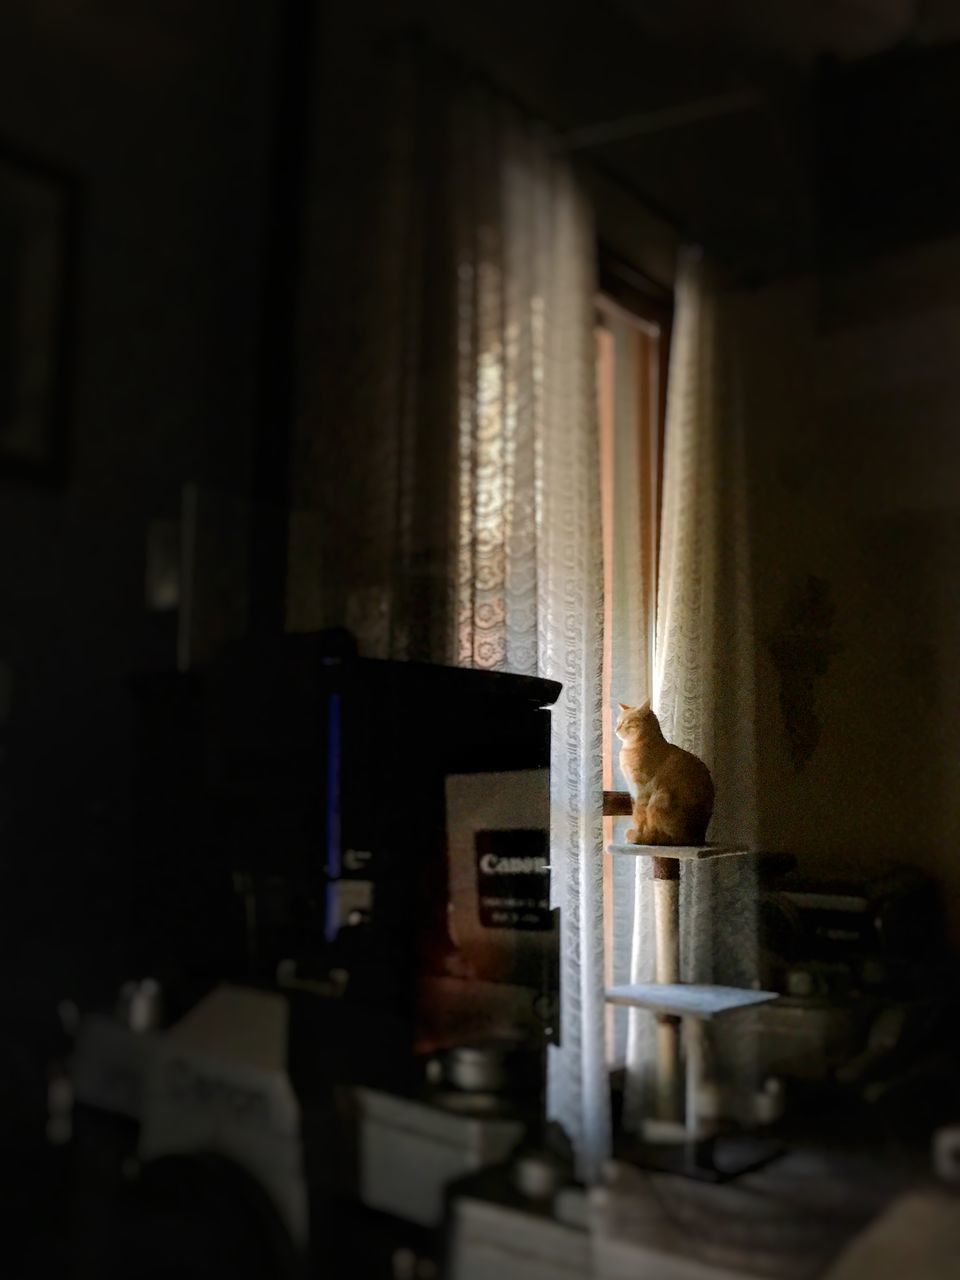 indoors, animal, mammal, domestic animals, animal themes, one animal, domestic, pets, feline, home interior, cat, domestic cat, no people, selective focus, vertebrate, window, domestic room, dark, table